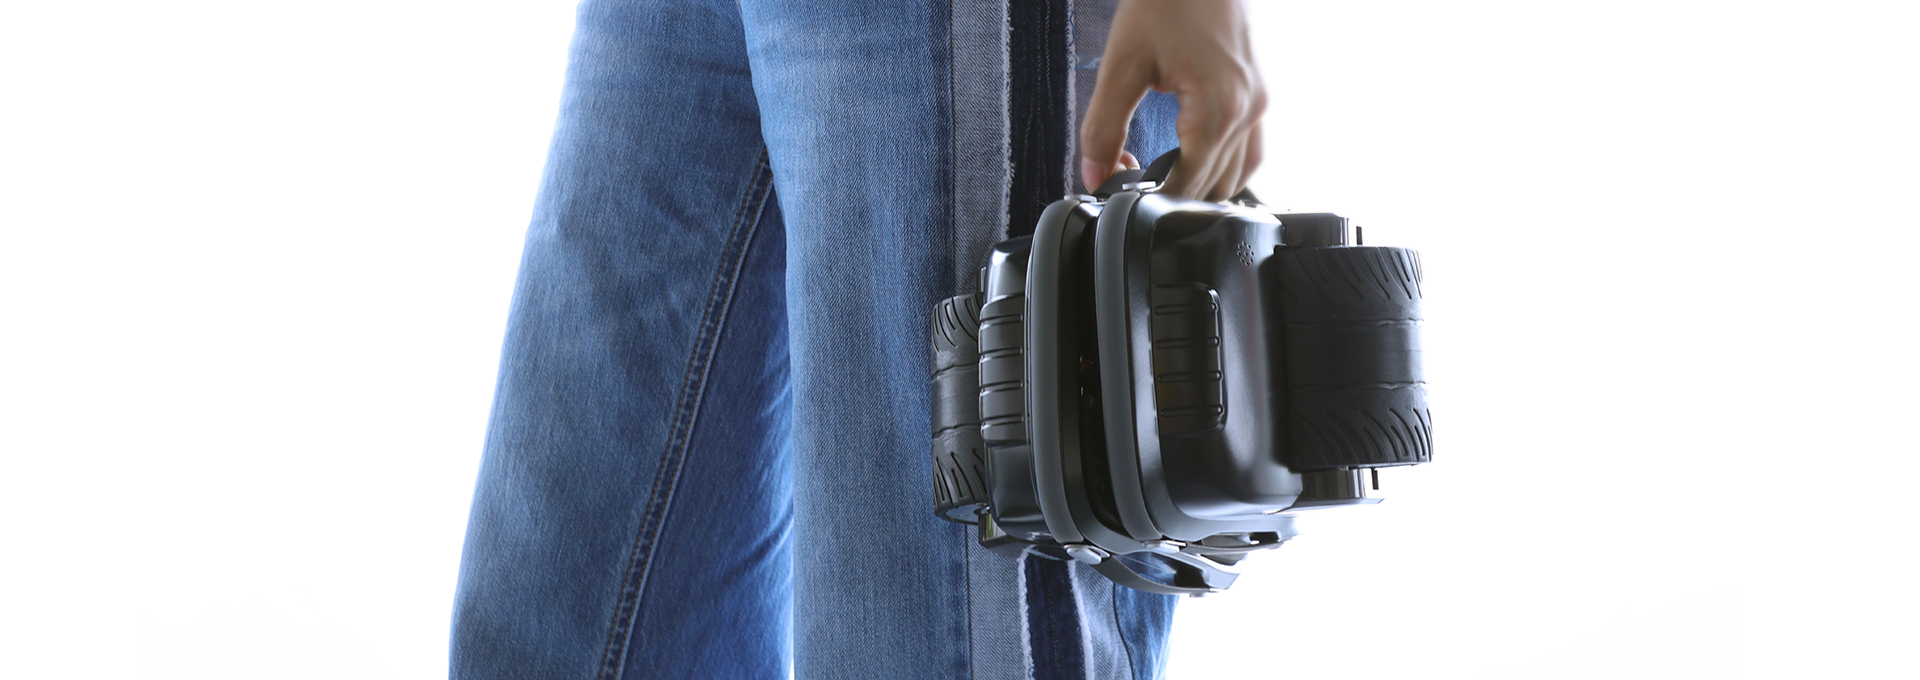 Only 3.3kg per Unit, Portable Belts Design, Free Free to Take X1 to Anywhere.